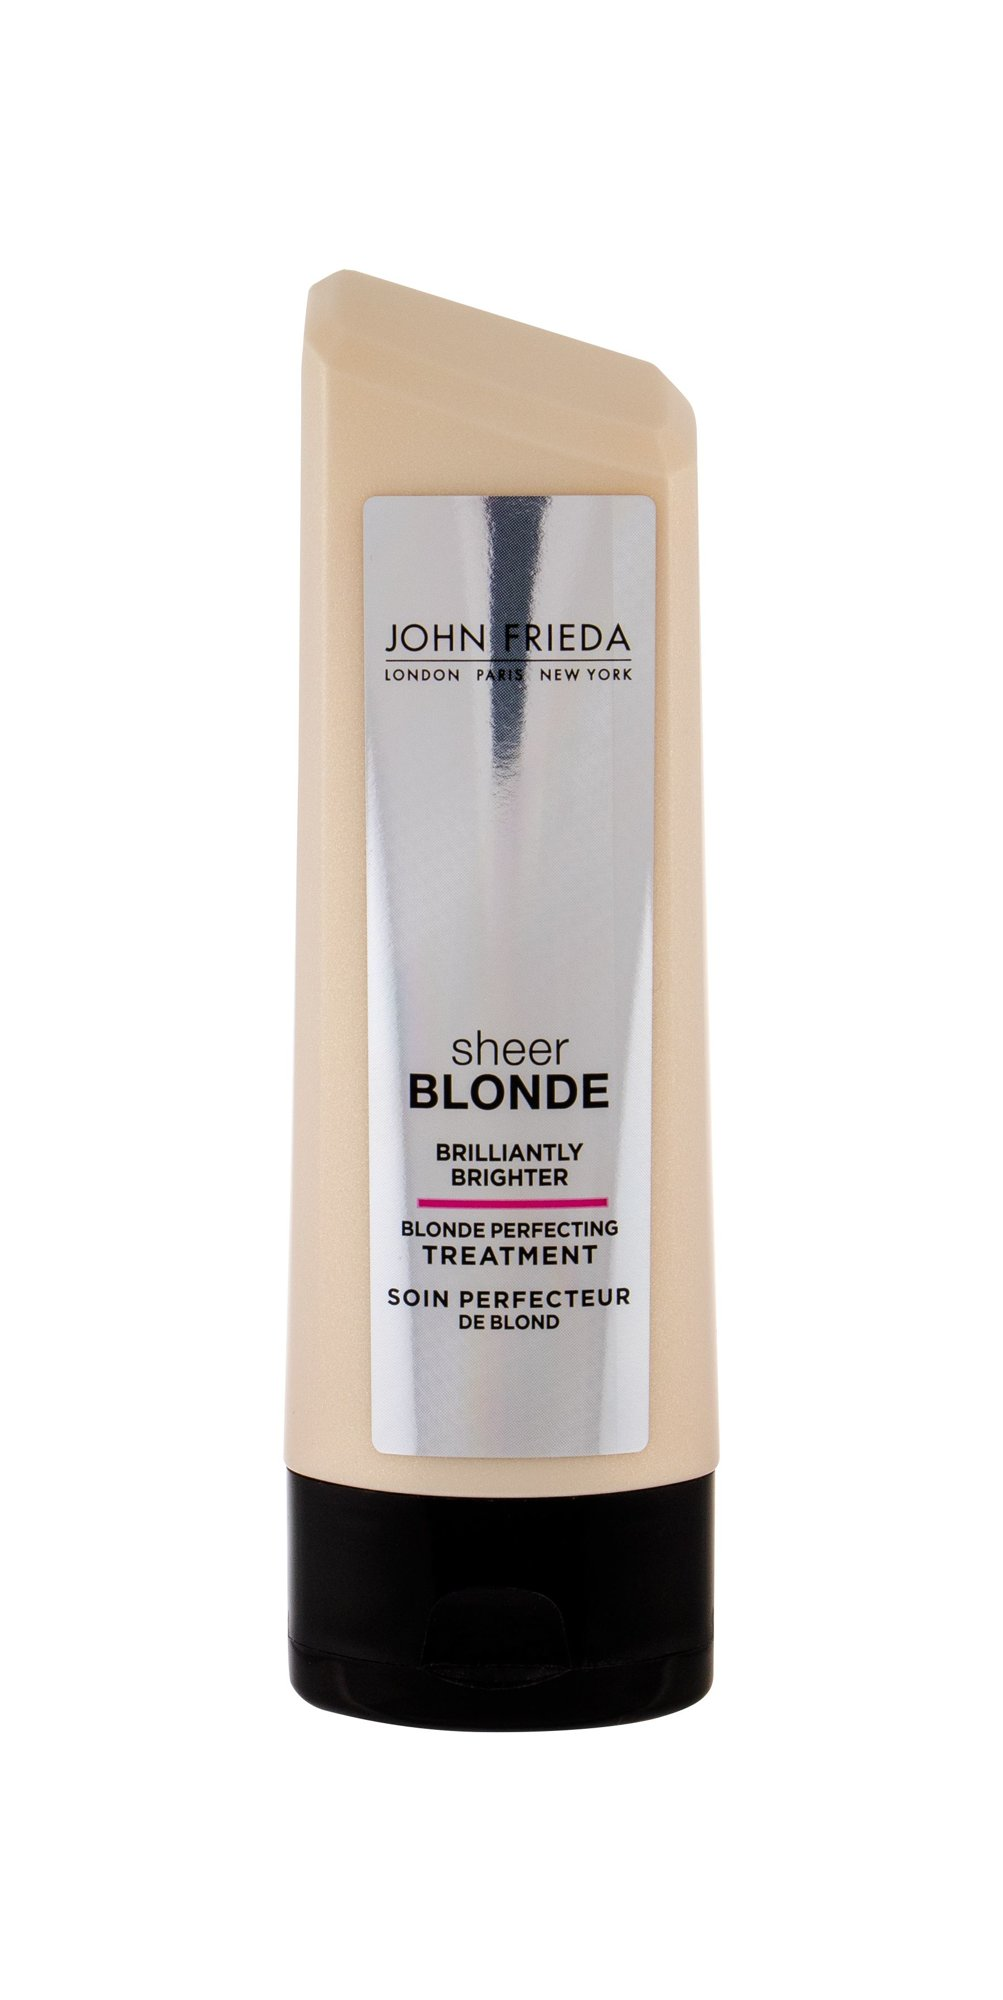 John Frieda Sheer Blonde Hair Balm 120ml